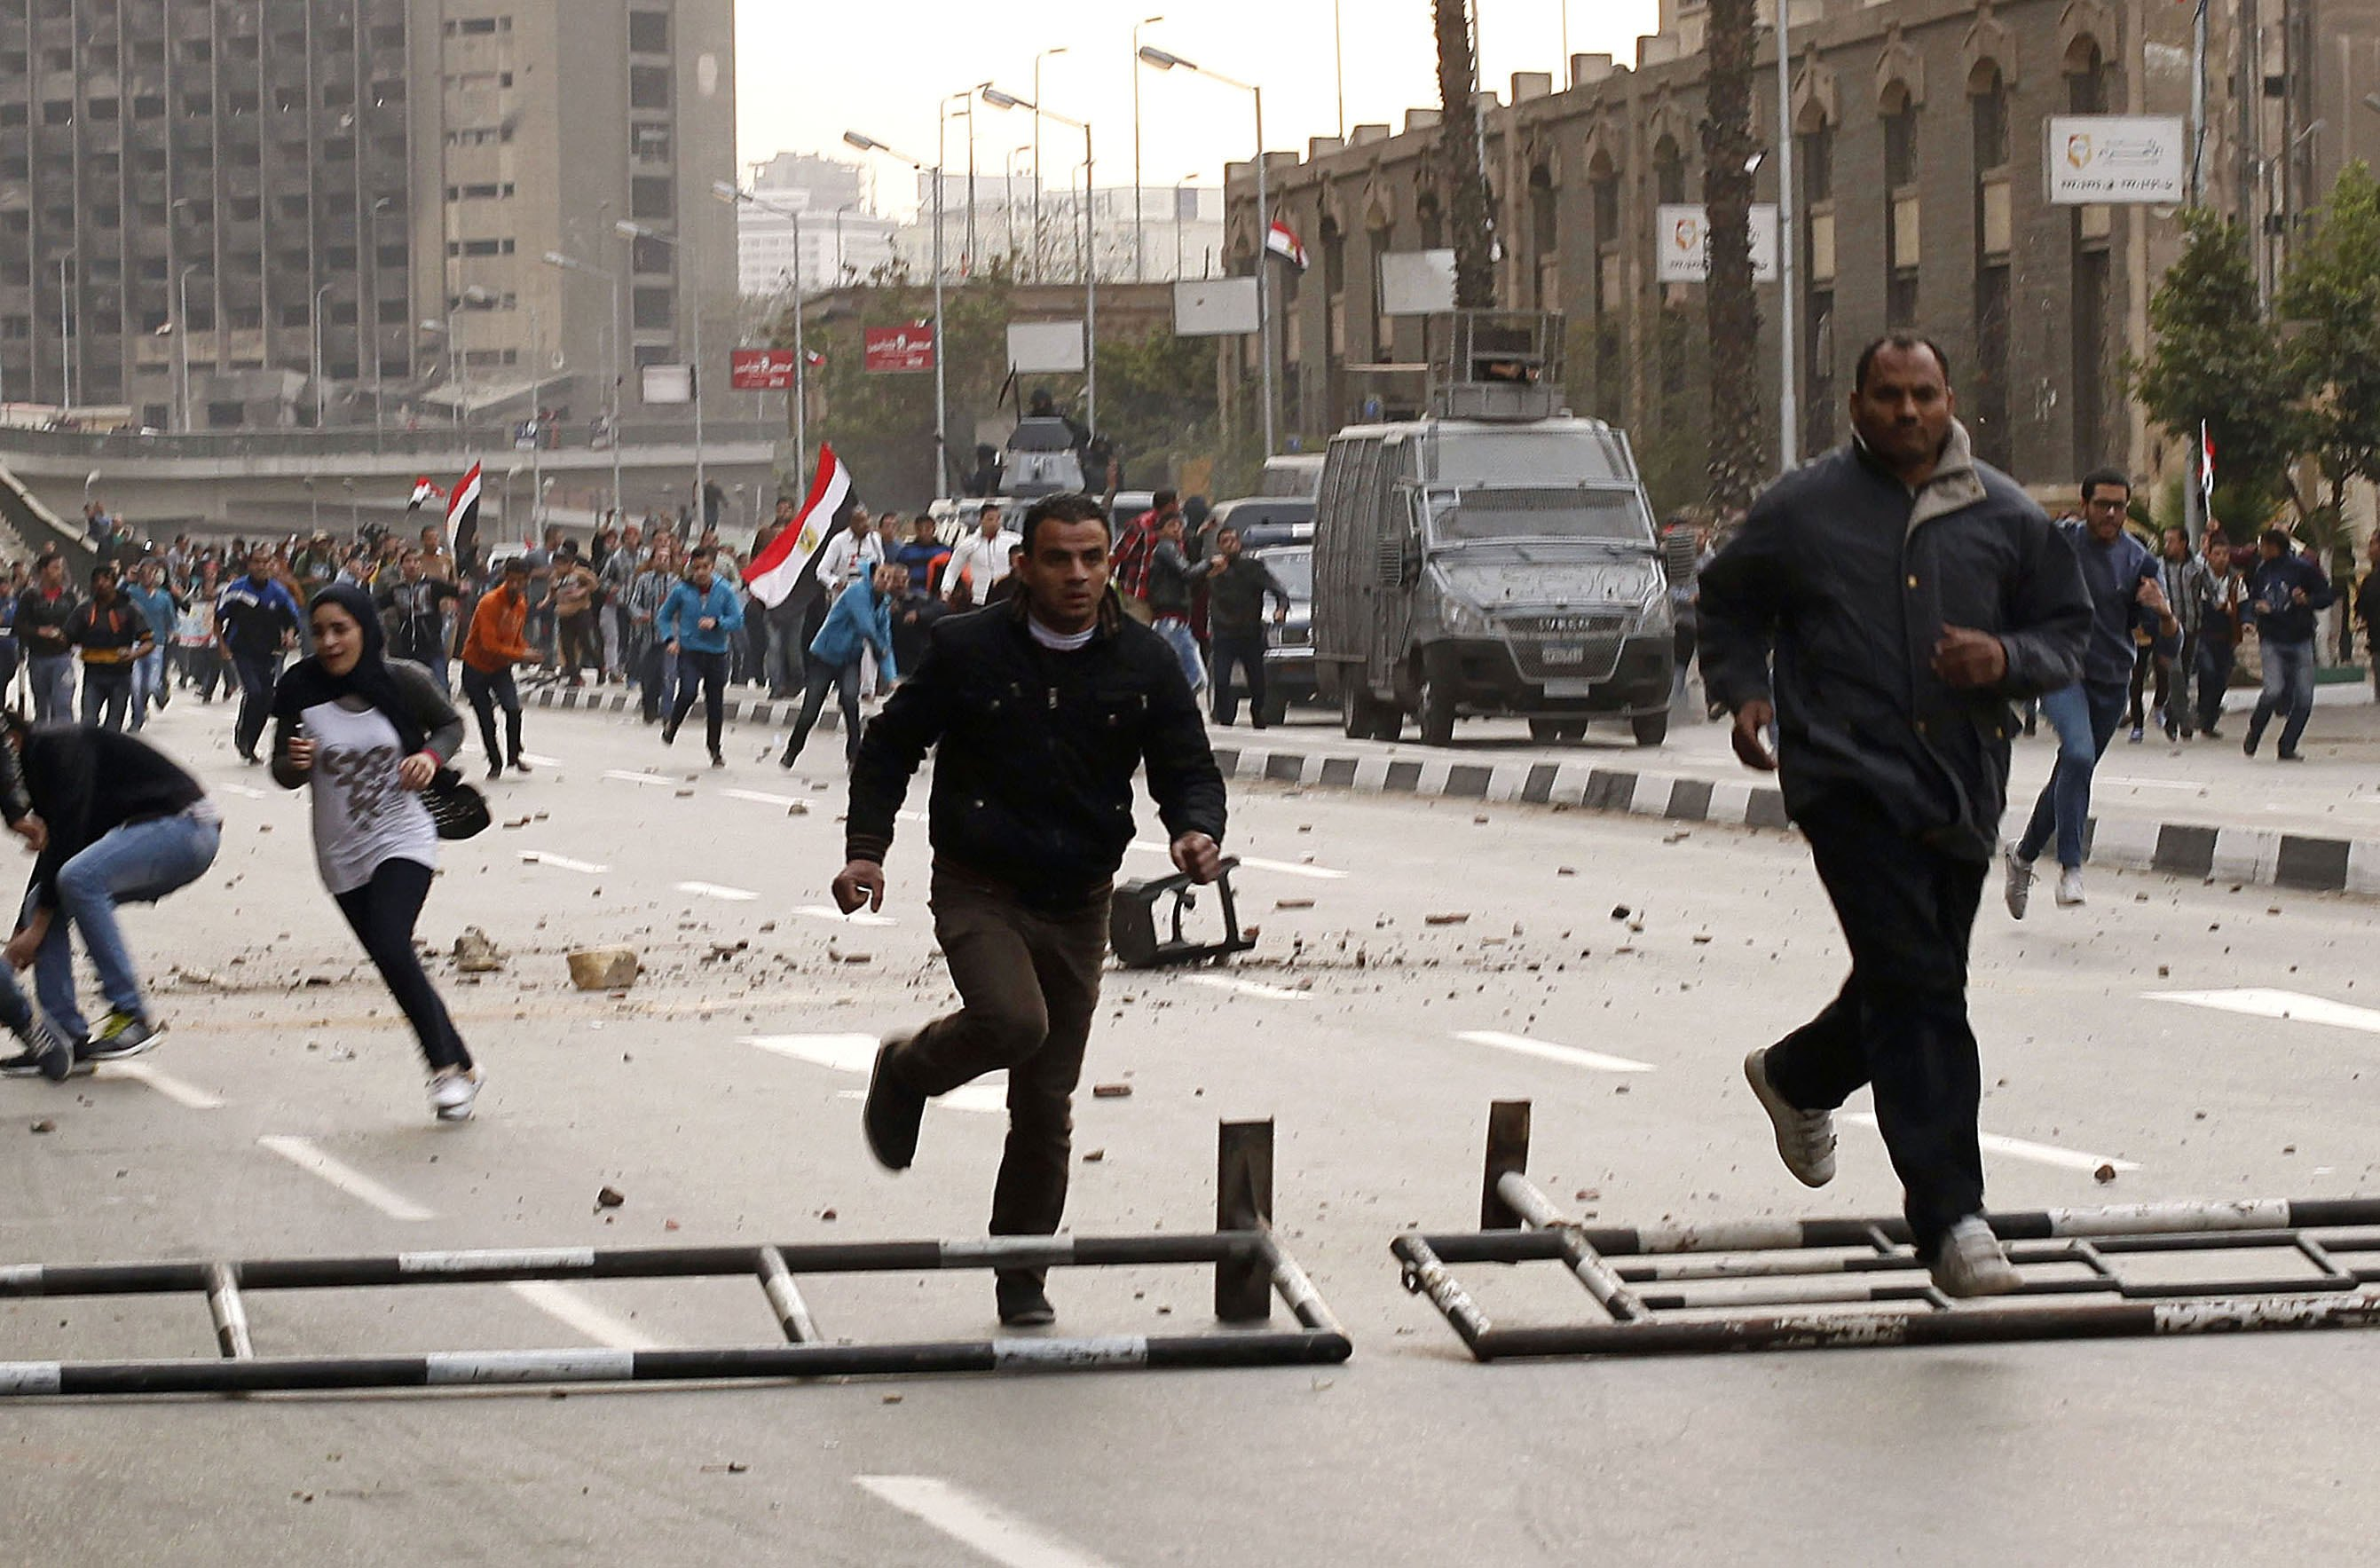 Protest dispersed outside press syndicate